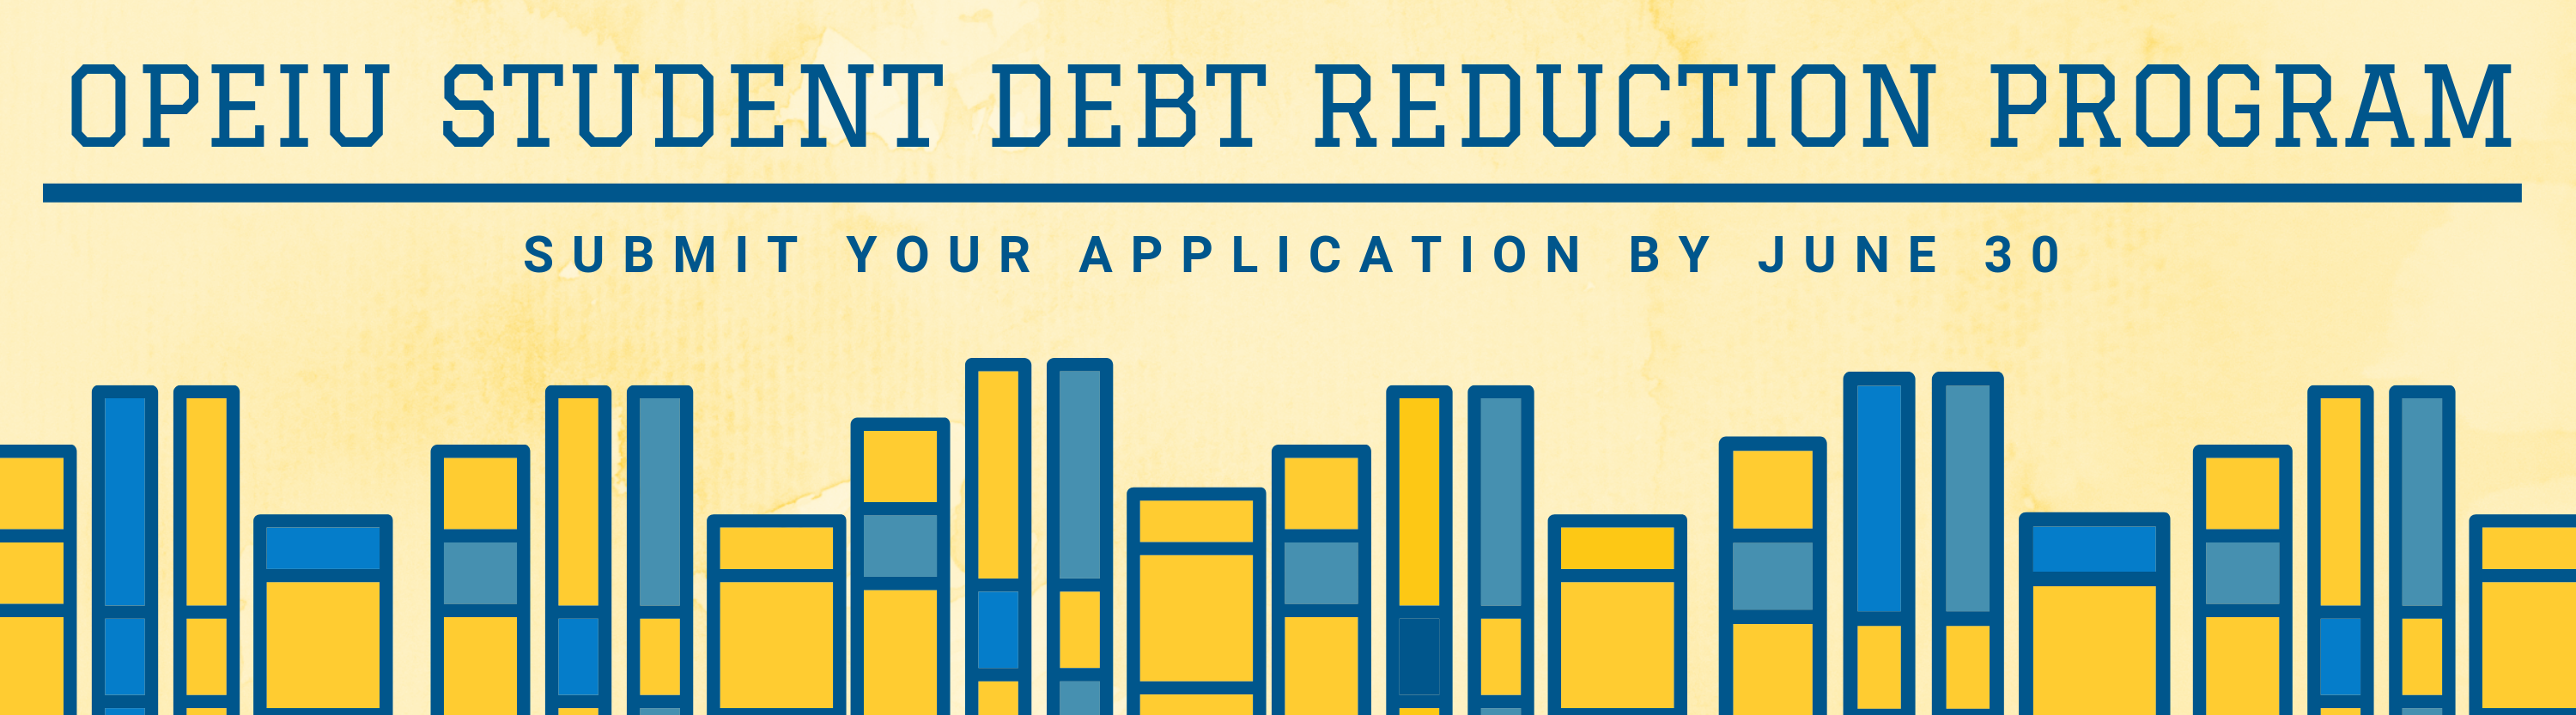 2019 Student Debt Reduction Program